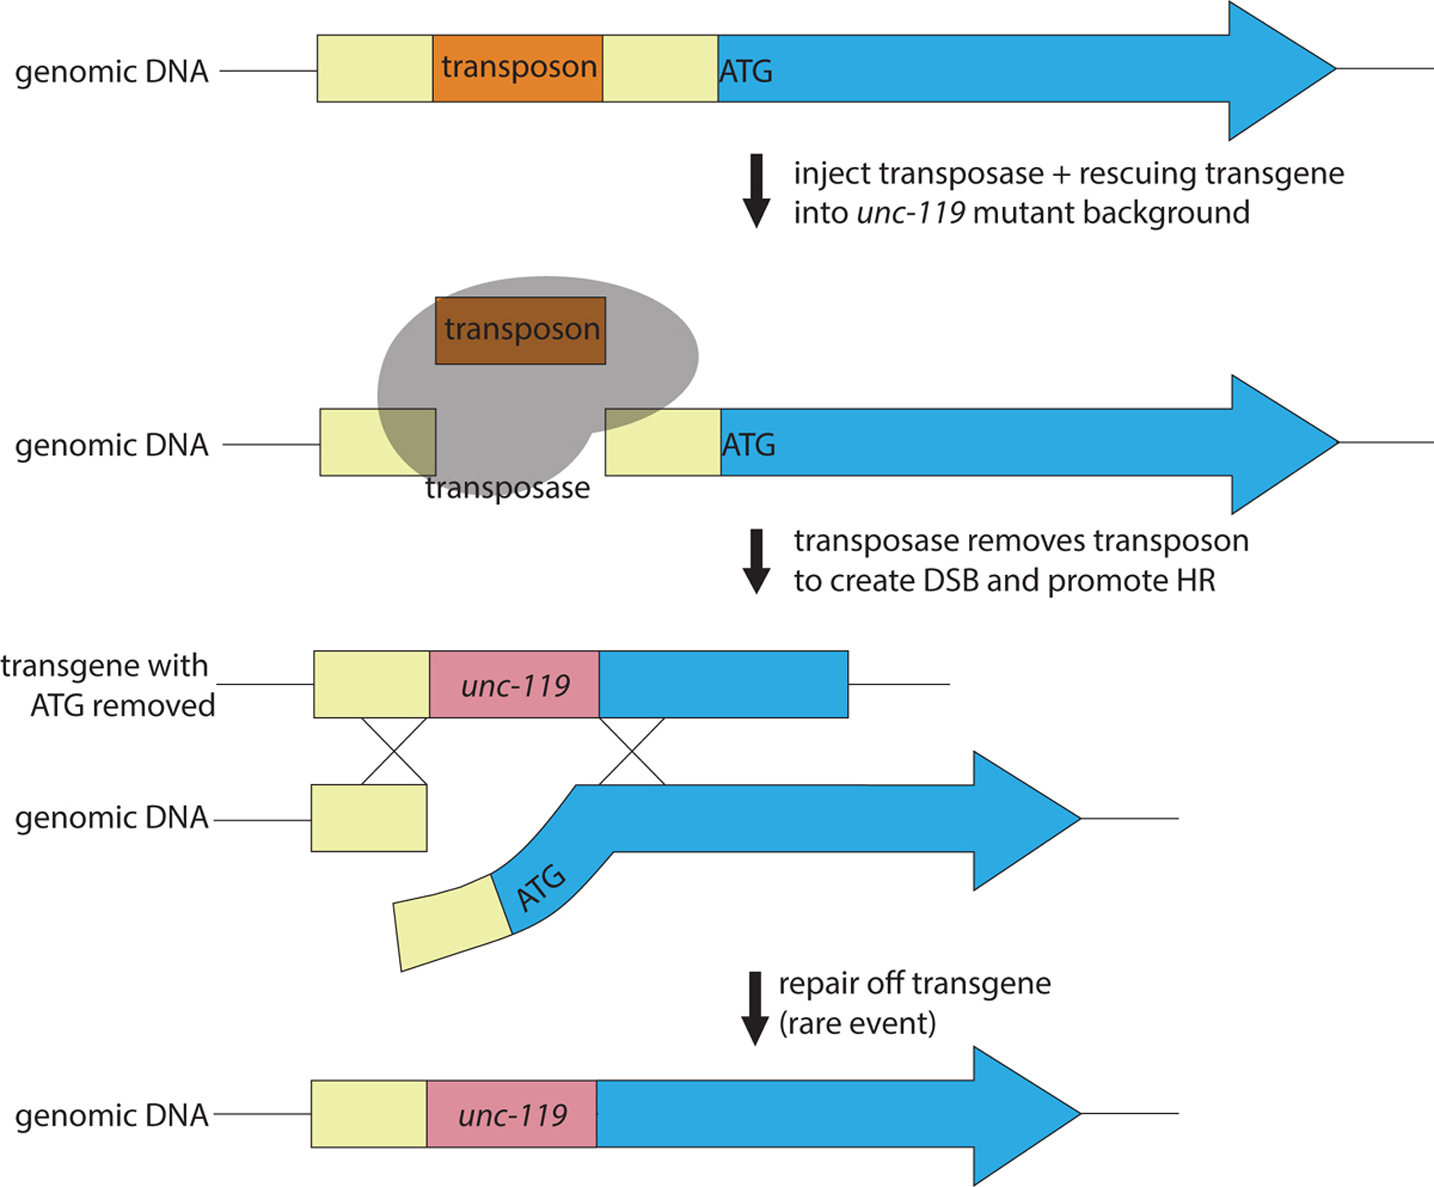 forward and reverse mutagenesis in c elegans targeted gene deletions using transposons to generate a targeted gene deletion a transposase and a rescuing transgene containing a selection marker in